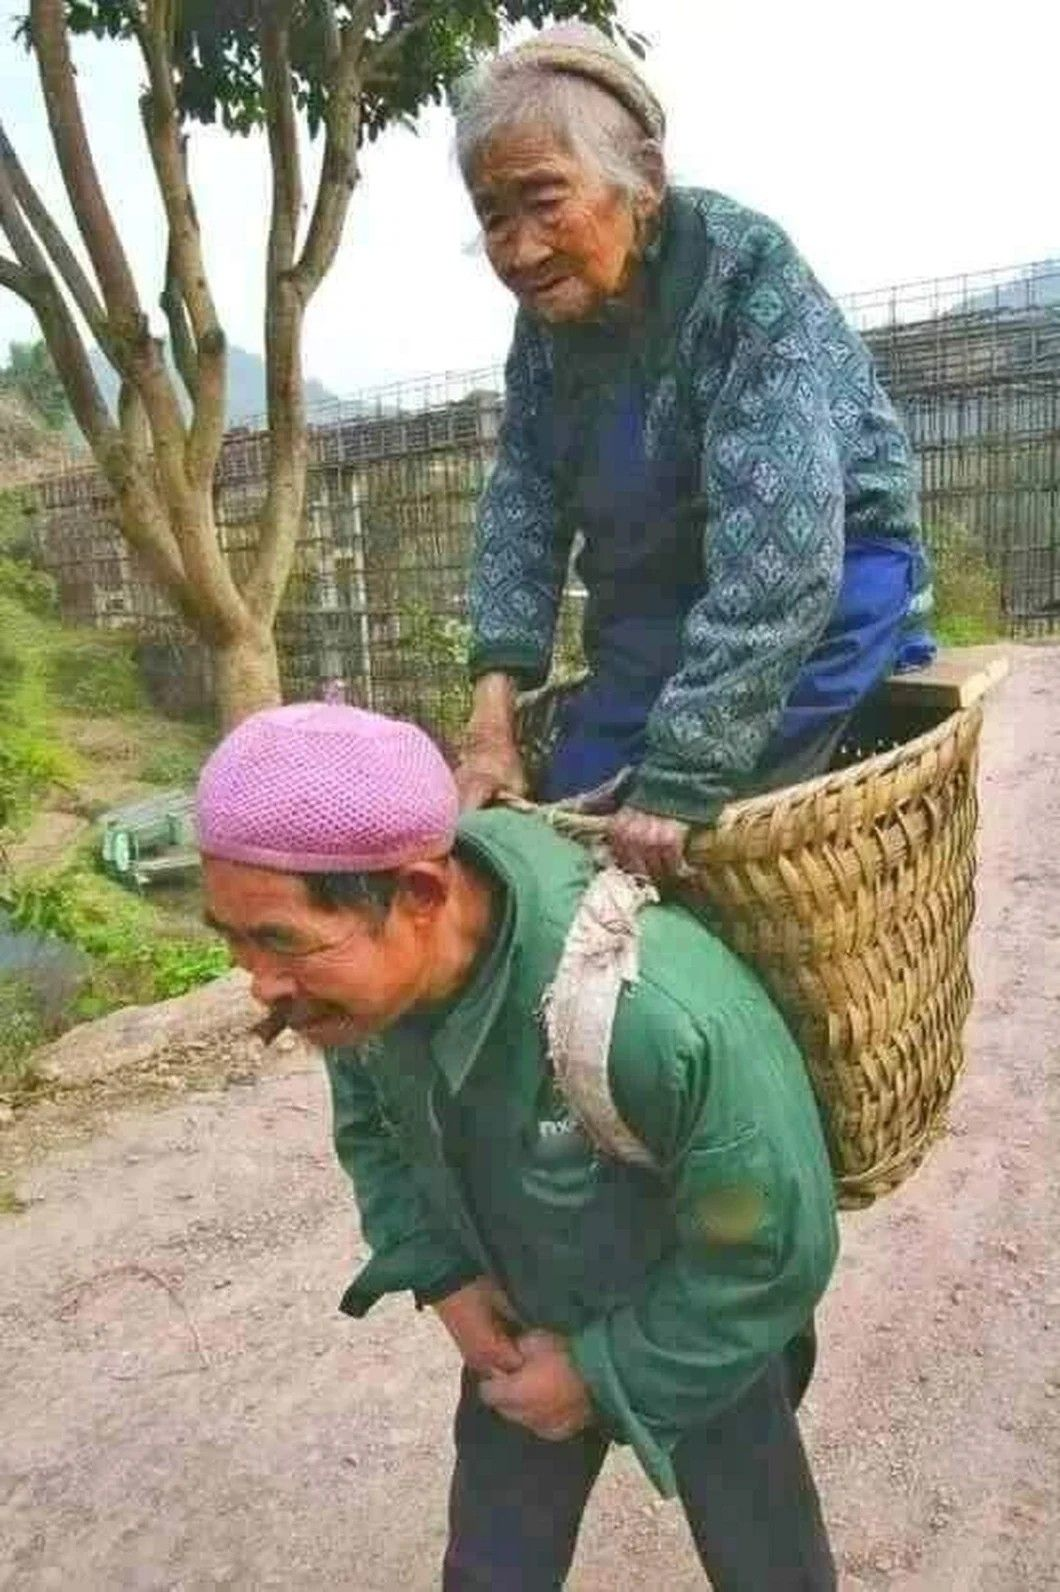 In East Asia, reverance for & taking care of the elderly is a way of life followed for thousands of years.